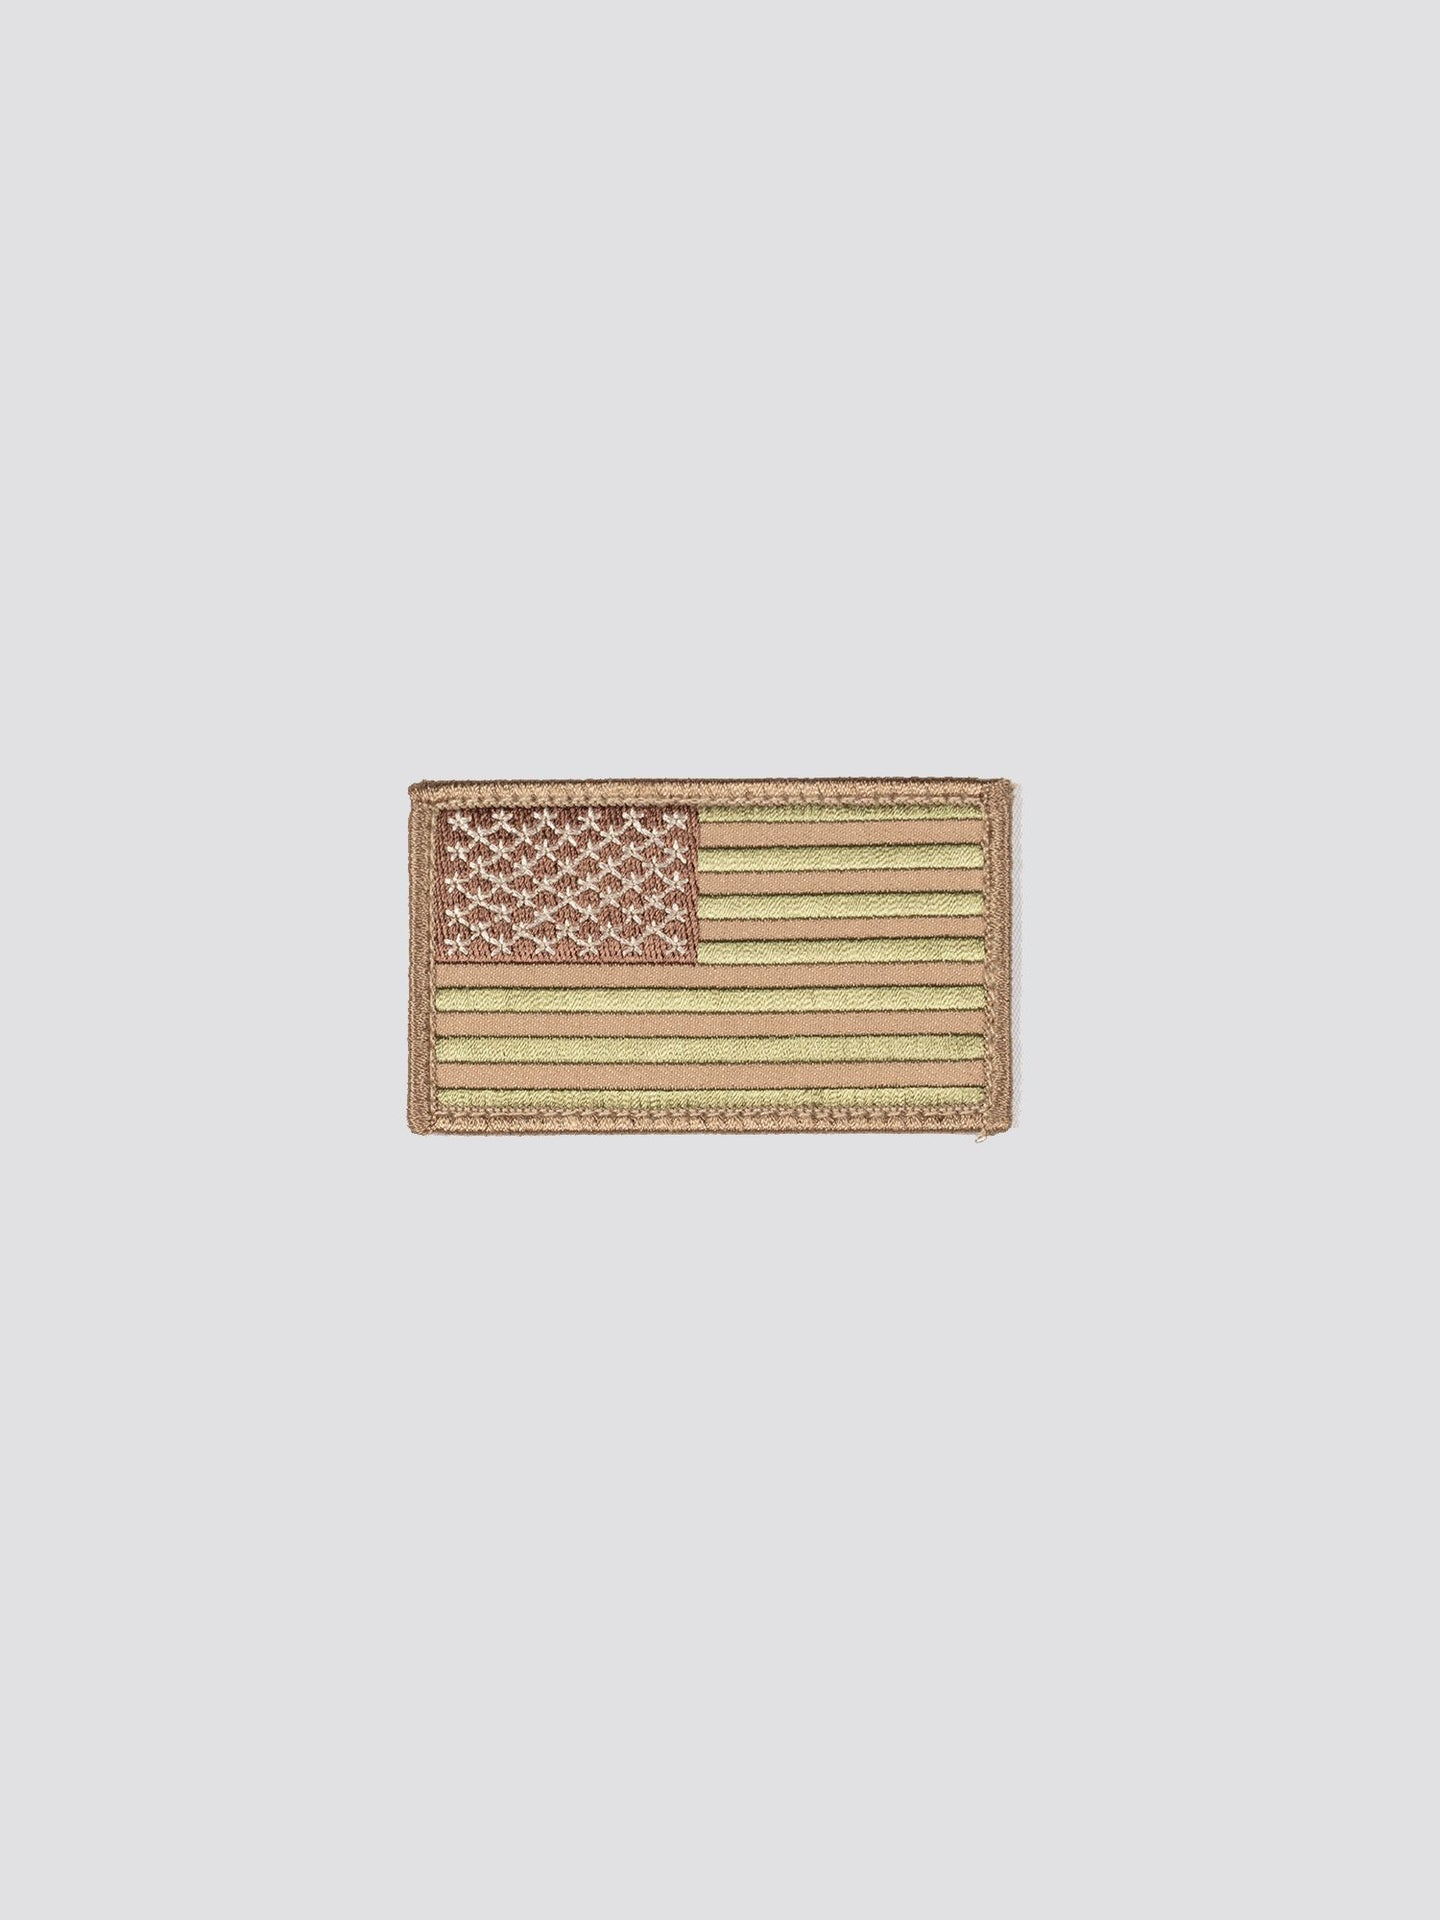 USA FLAG SHOULDER PATCH ACCESSORY Alpha Industries SAGE GREEN 0